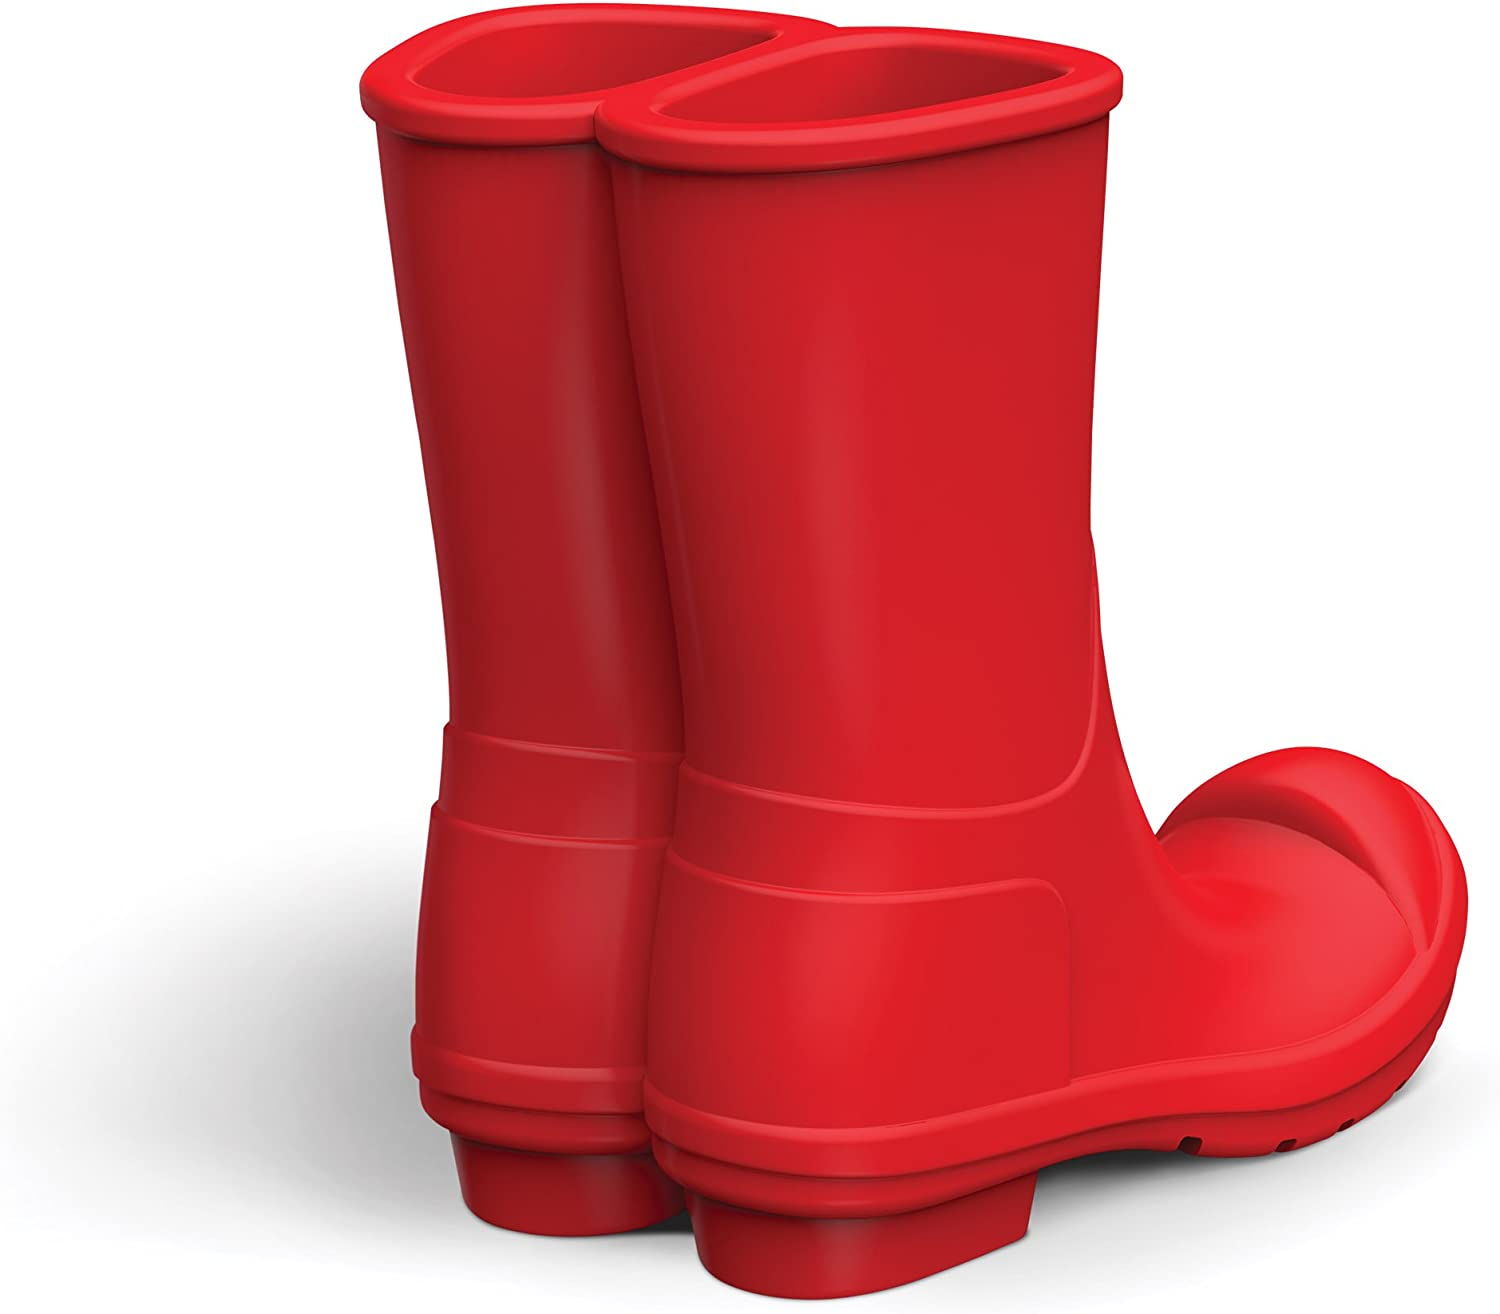 Fred 5216342 REBOOT Silicone Rain Boots Mobile Phone Stand, Red